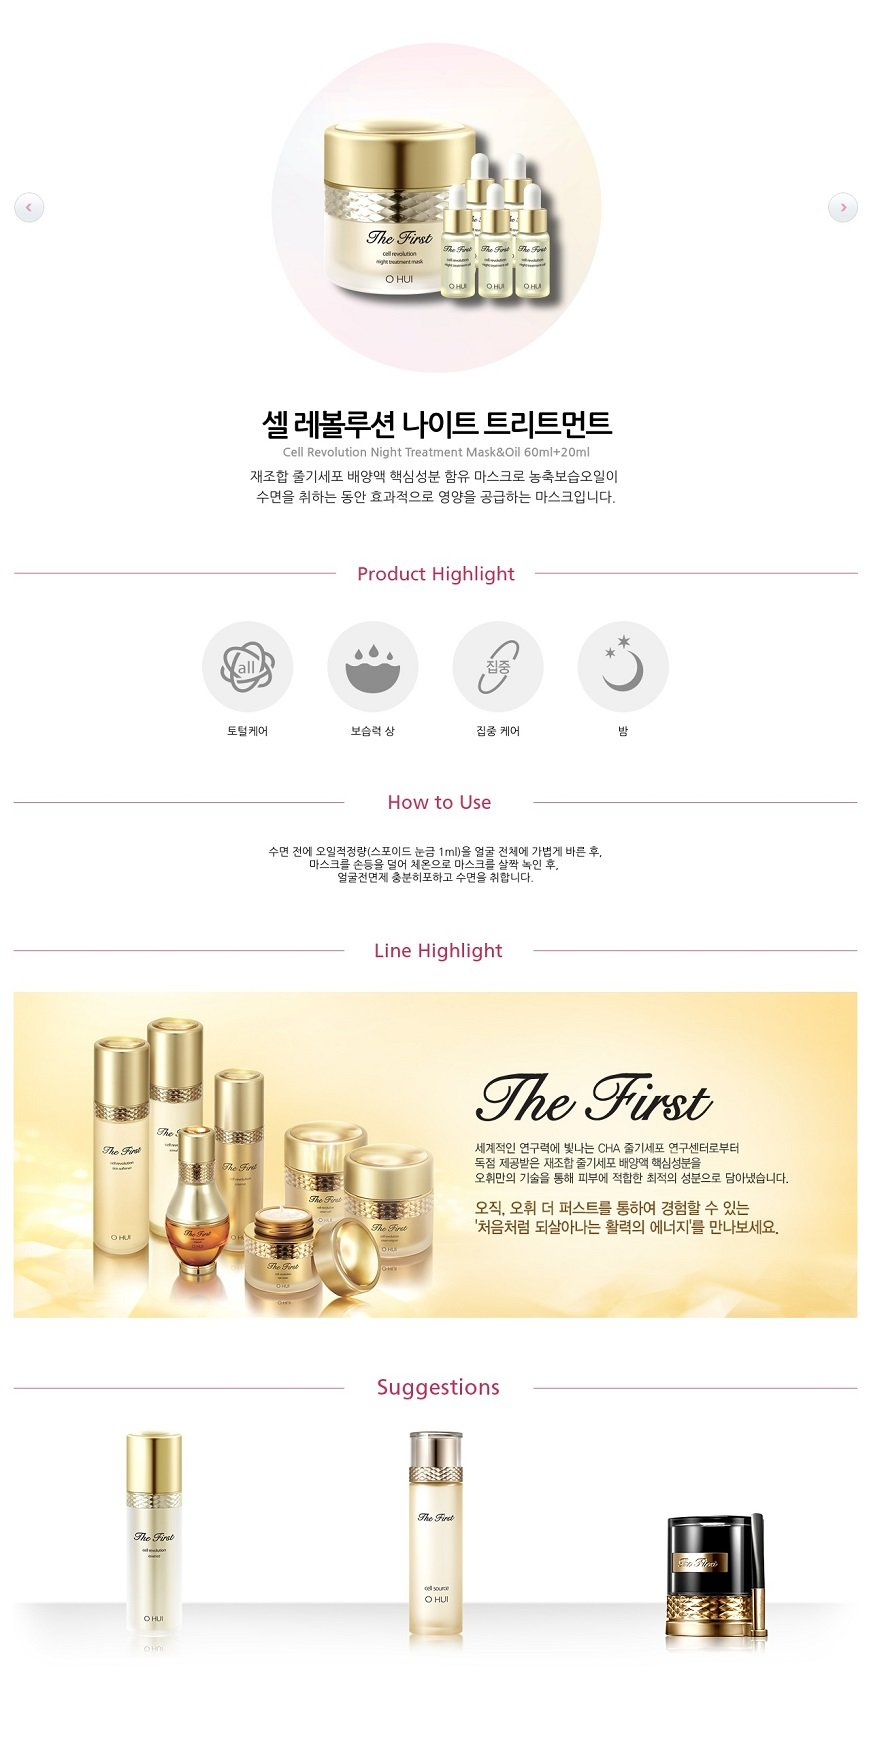 OHUI The First Cell Revolution Night Treatment Mask 60ml and Oil 5ml malaysia singapore indonesia